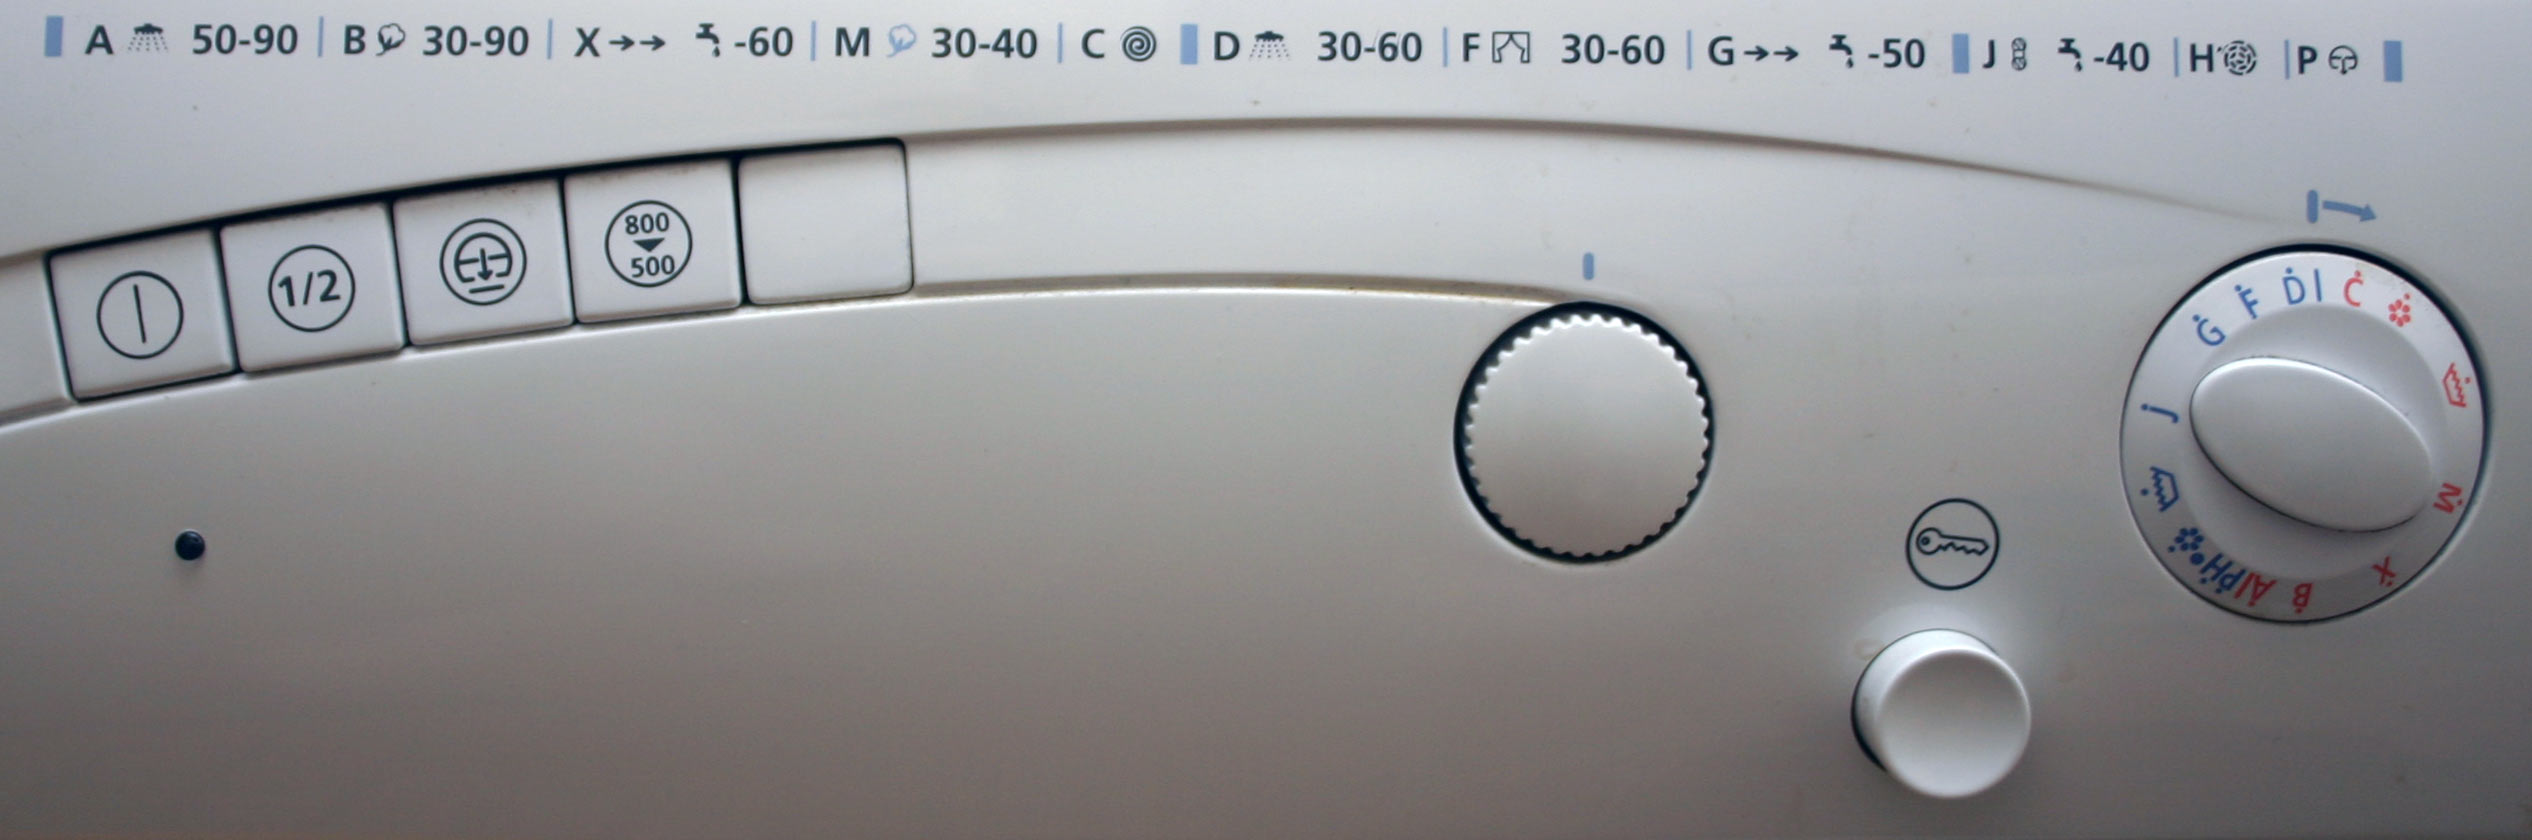 Washing Machine UI